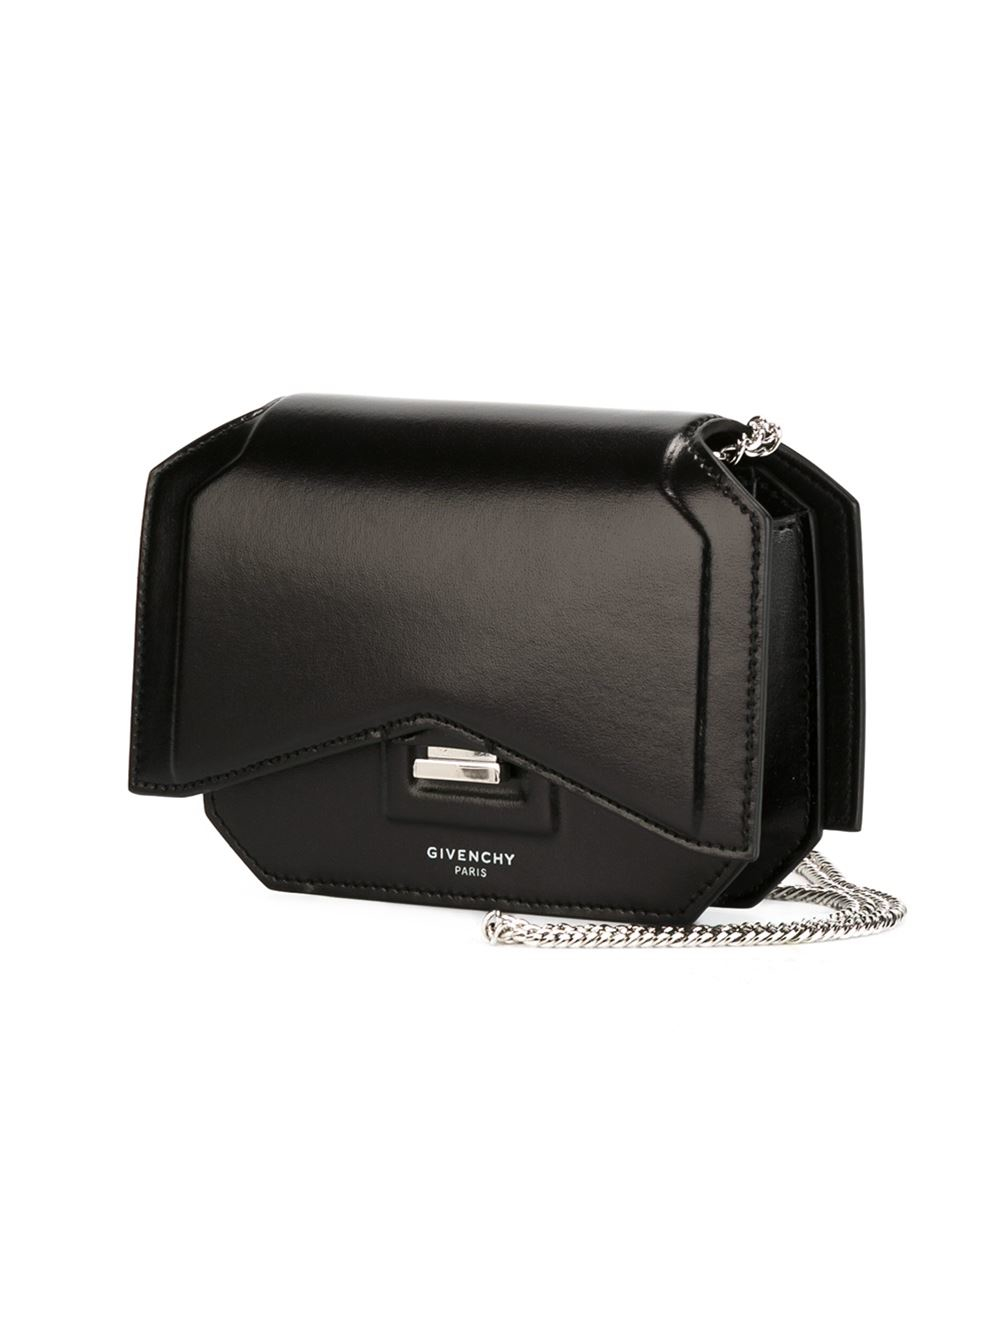 41433025ef29 Lyst - Givenchy Bow-cut Chain Wallet in Metallic